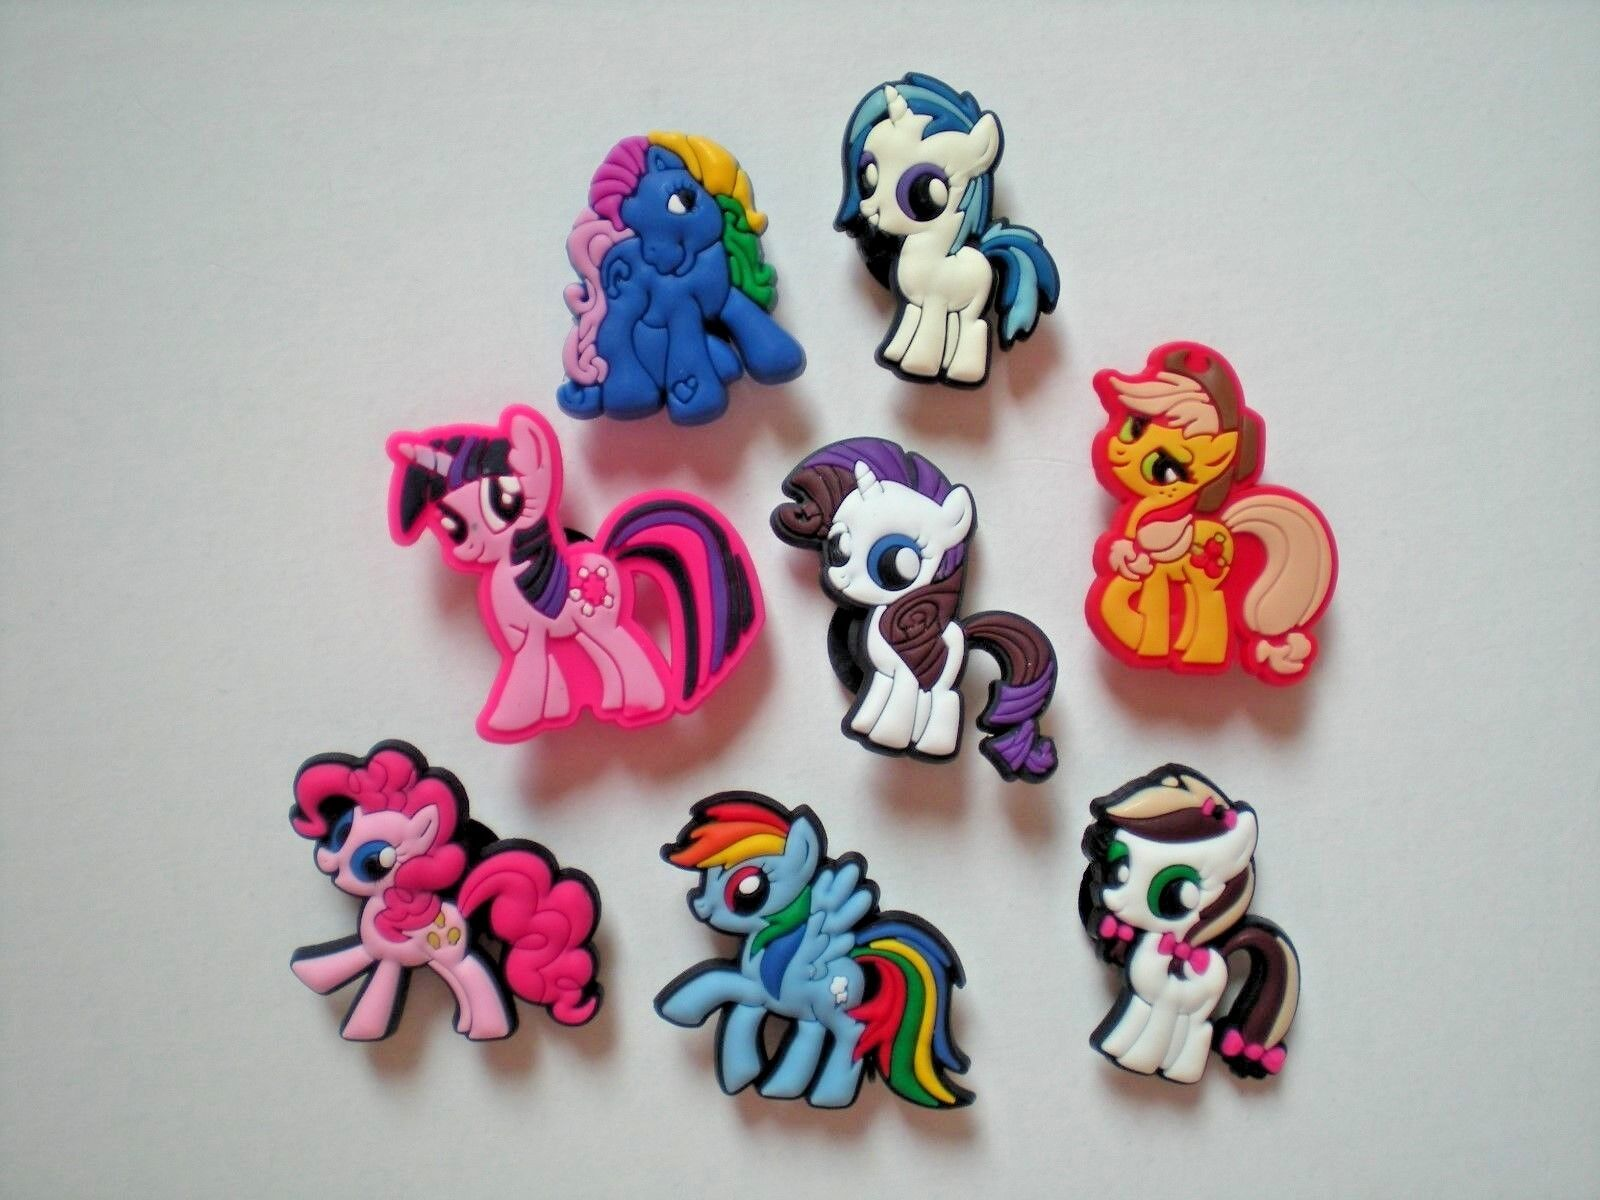 aa464d523 Details about JIbbitz Shoe Charm Button Plugs Fit Wristbands 8 My Little  Pony Pinky Pie